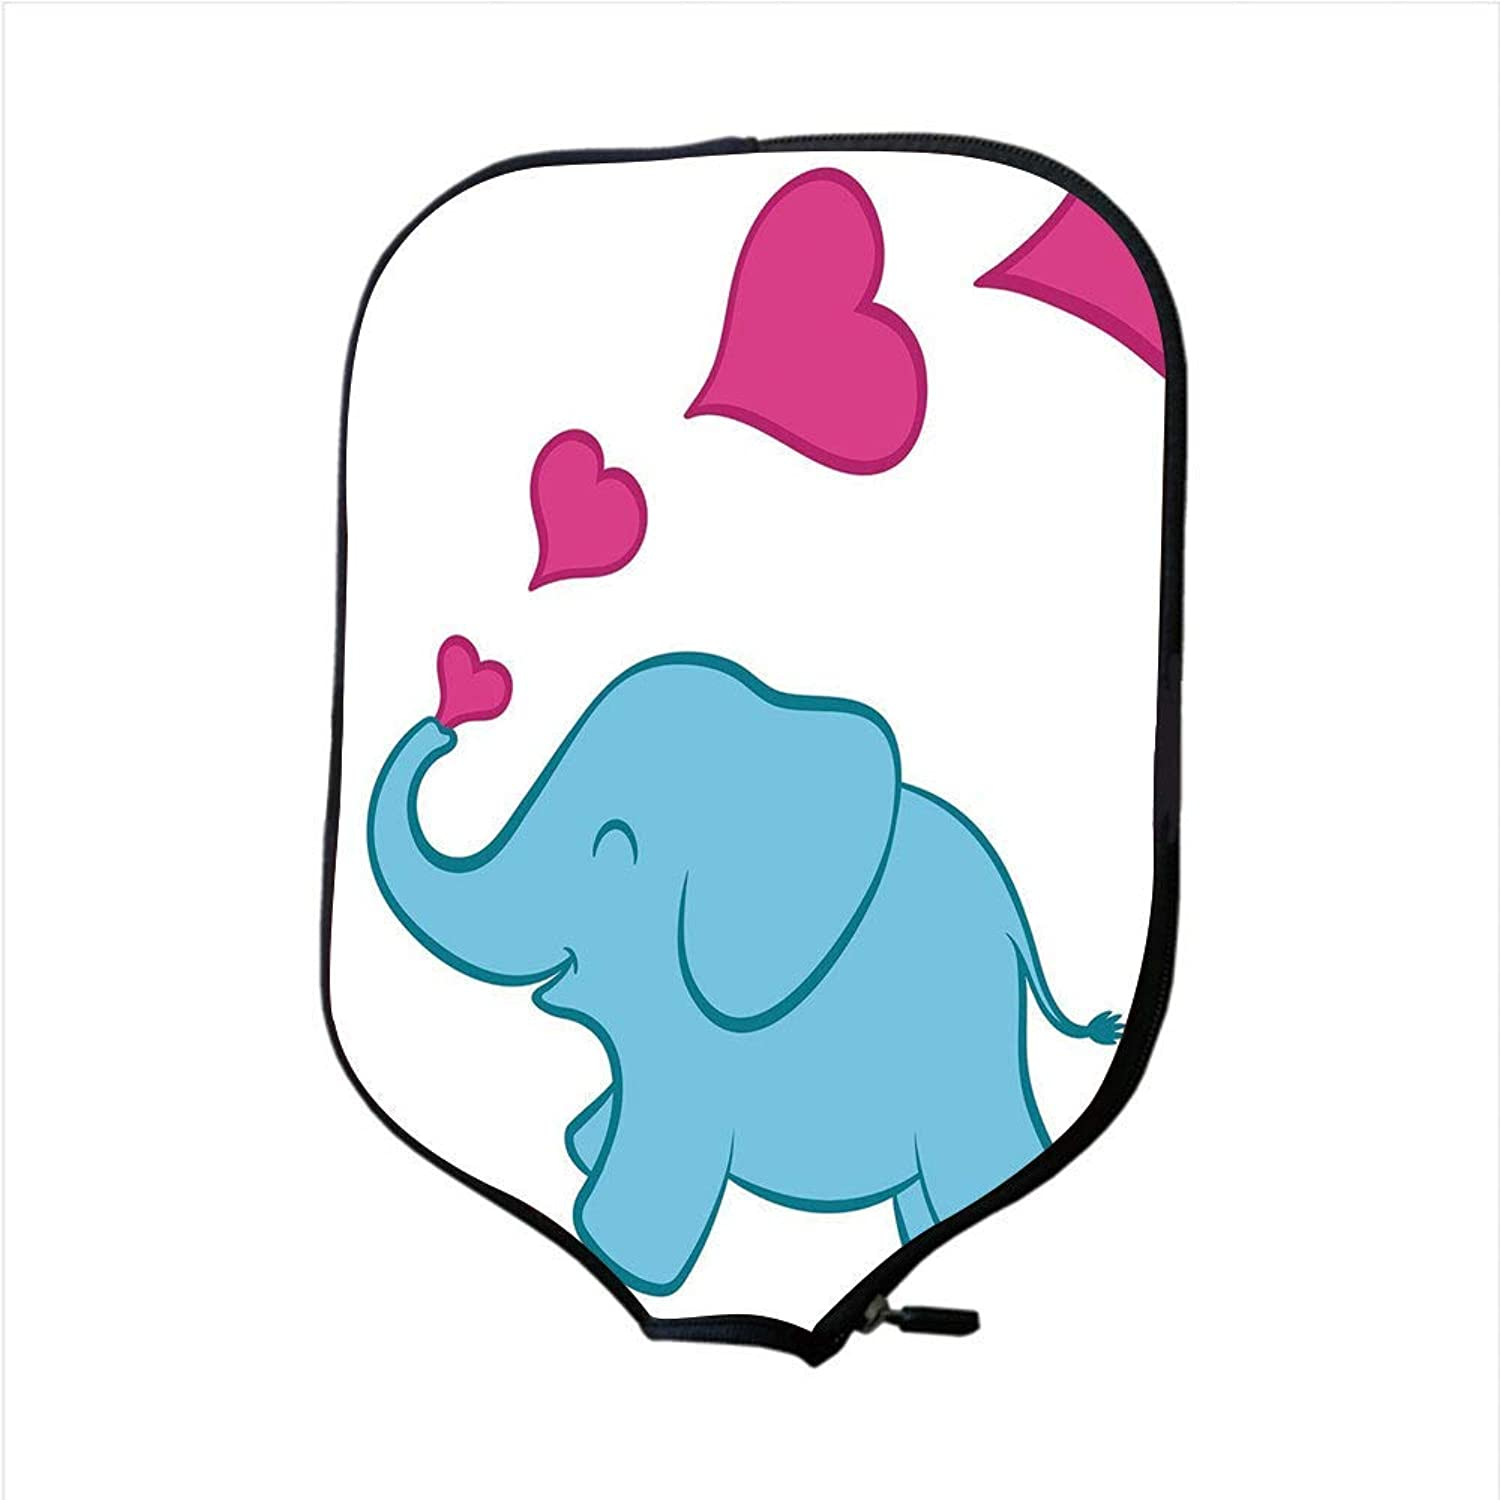 Fine Neoprene Pickleball Paddle Racket Cover Case,Nursery,Cute Vibrant colord Elephant Valentines Day Inspired Romantic Drawing Style Decorative,Sky blueee Pink,Fit for Most Rackets